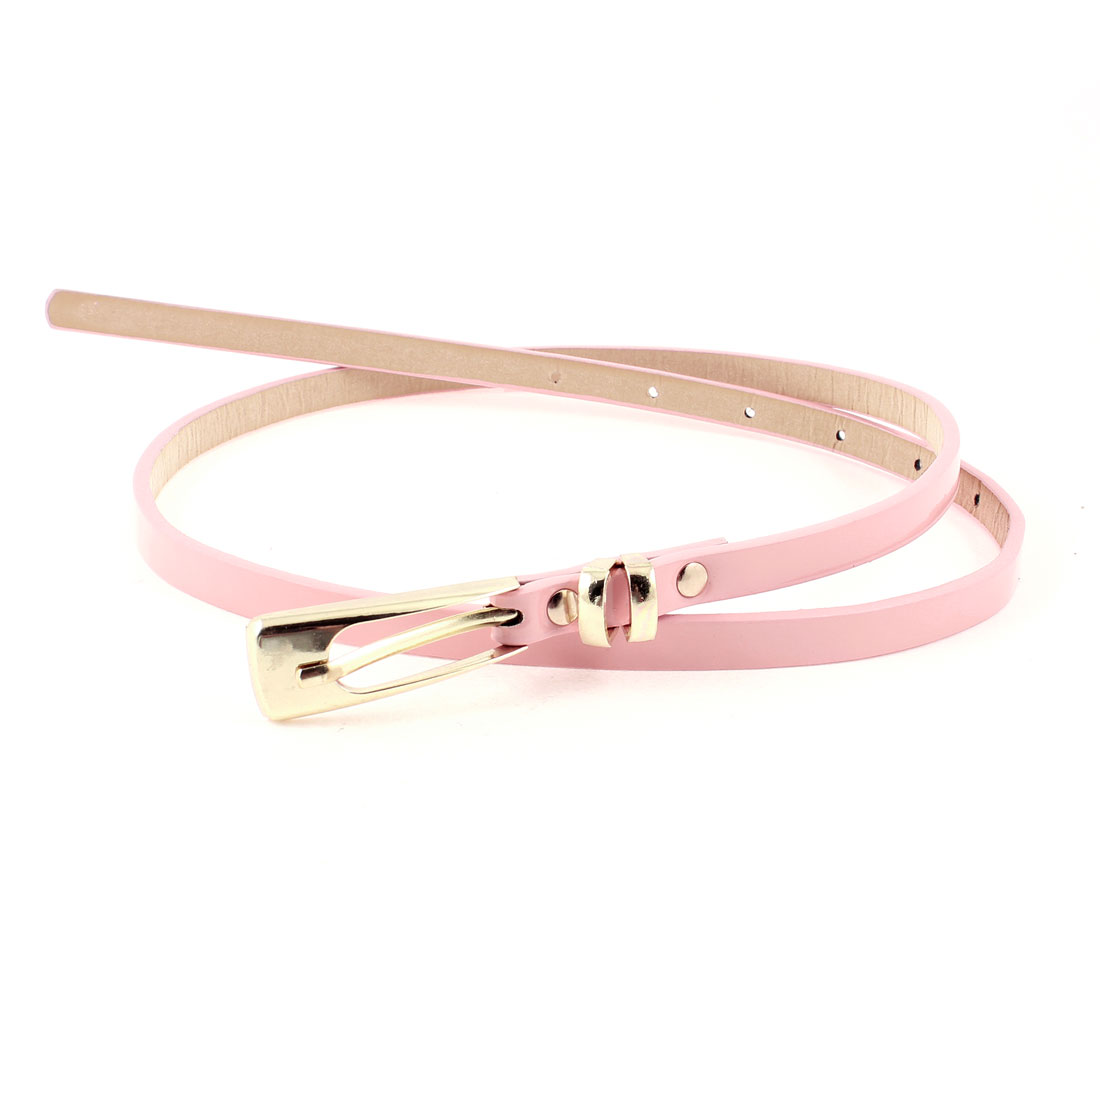 Woman Single Pin Buckle Pale Pink Faux Leather Skinny Waist Belt